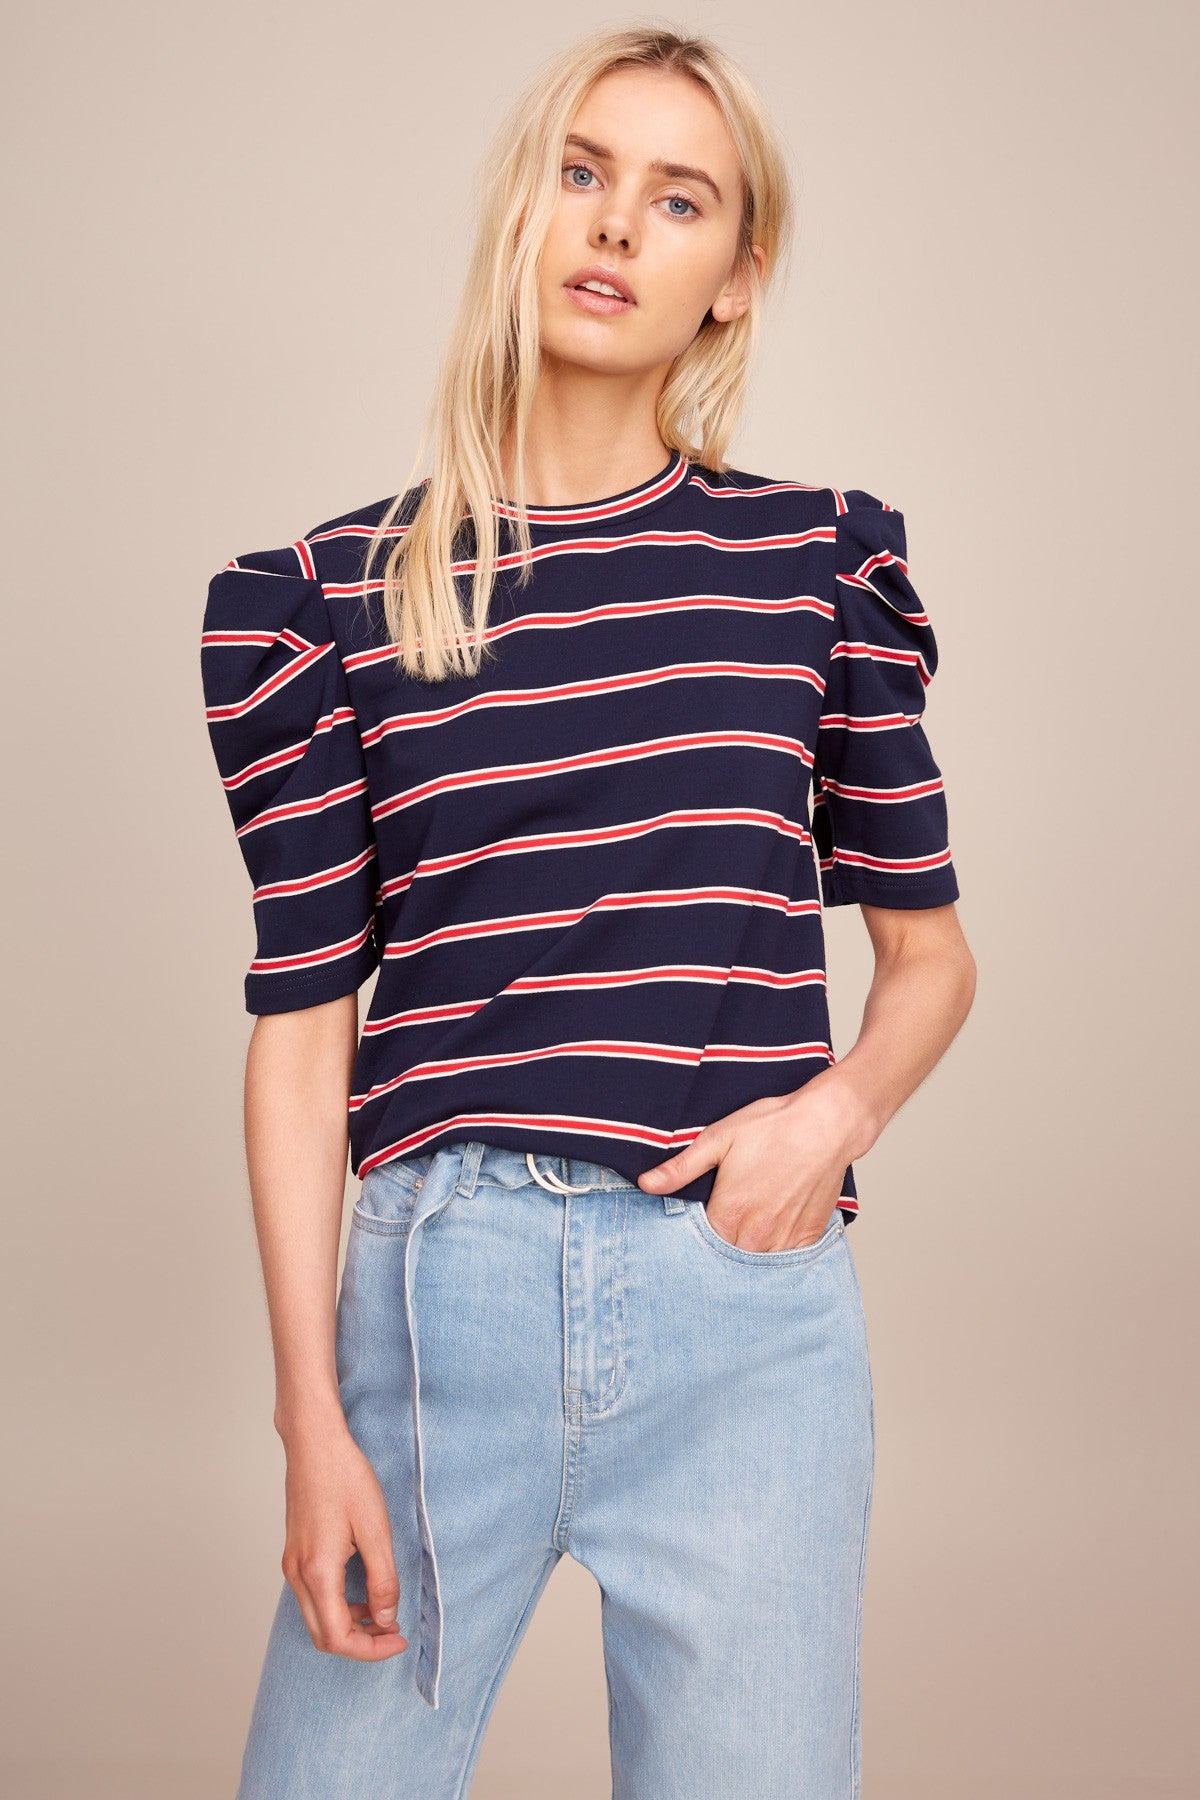 The Fifth Kinetic Stripe T-Shirt in Navy with Red